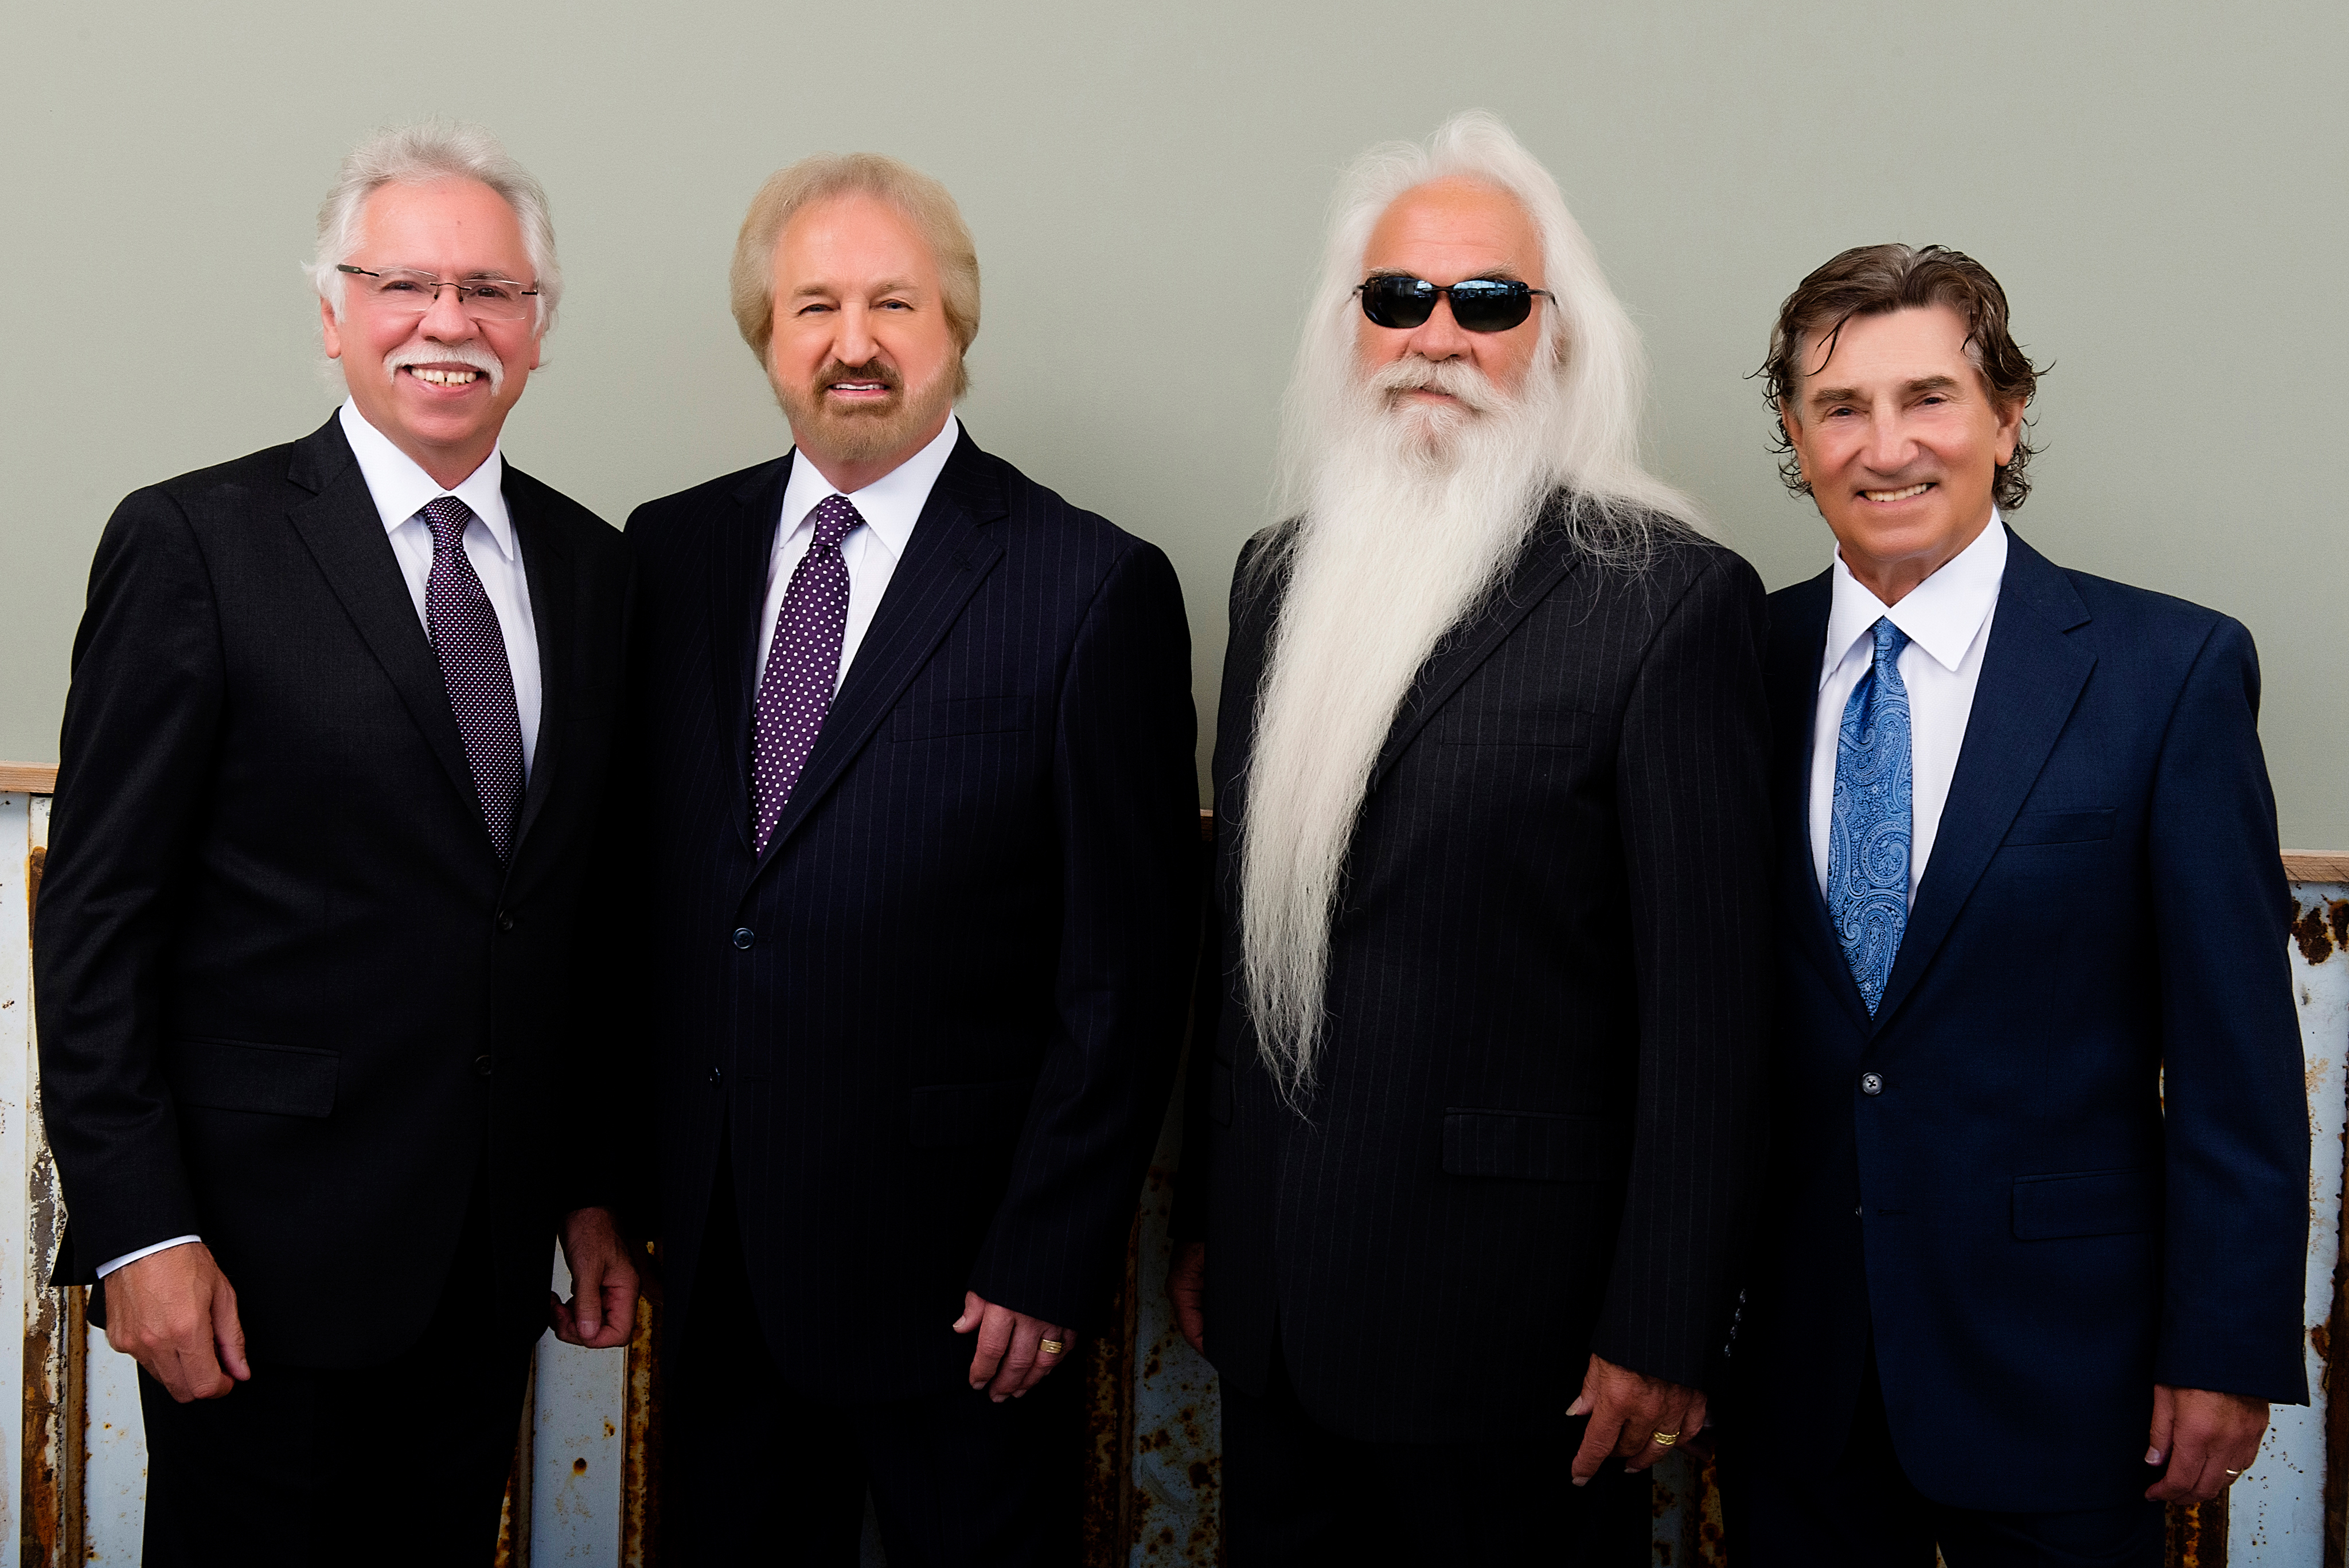 Country music legends, The Oak Ridge Boys launch their suit line with a mission to bring jobs home to America